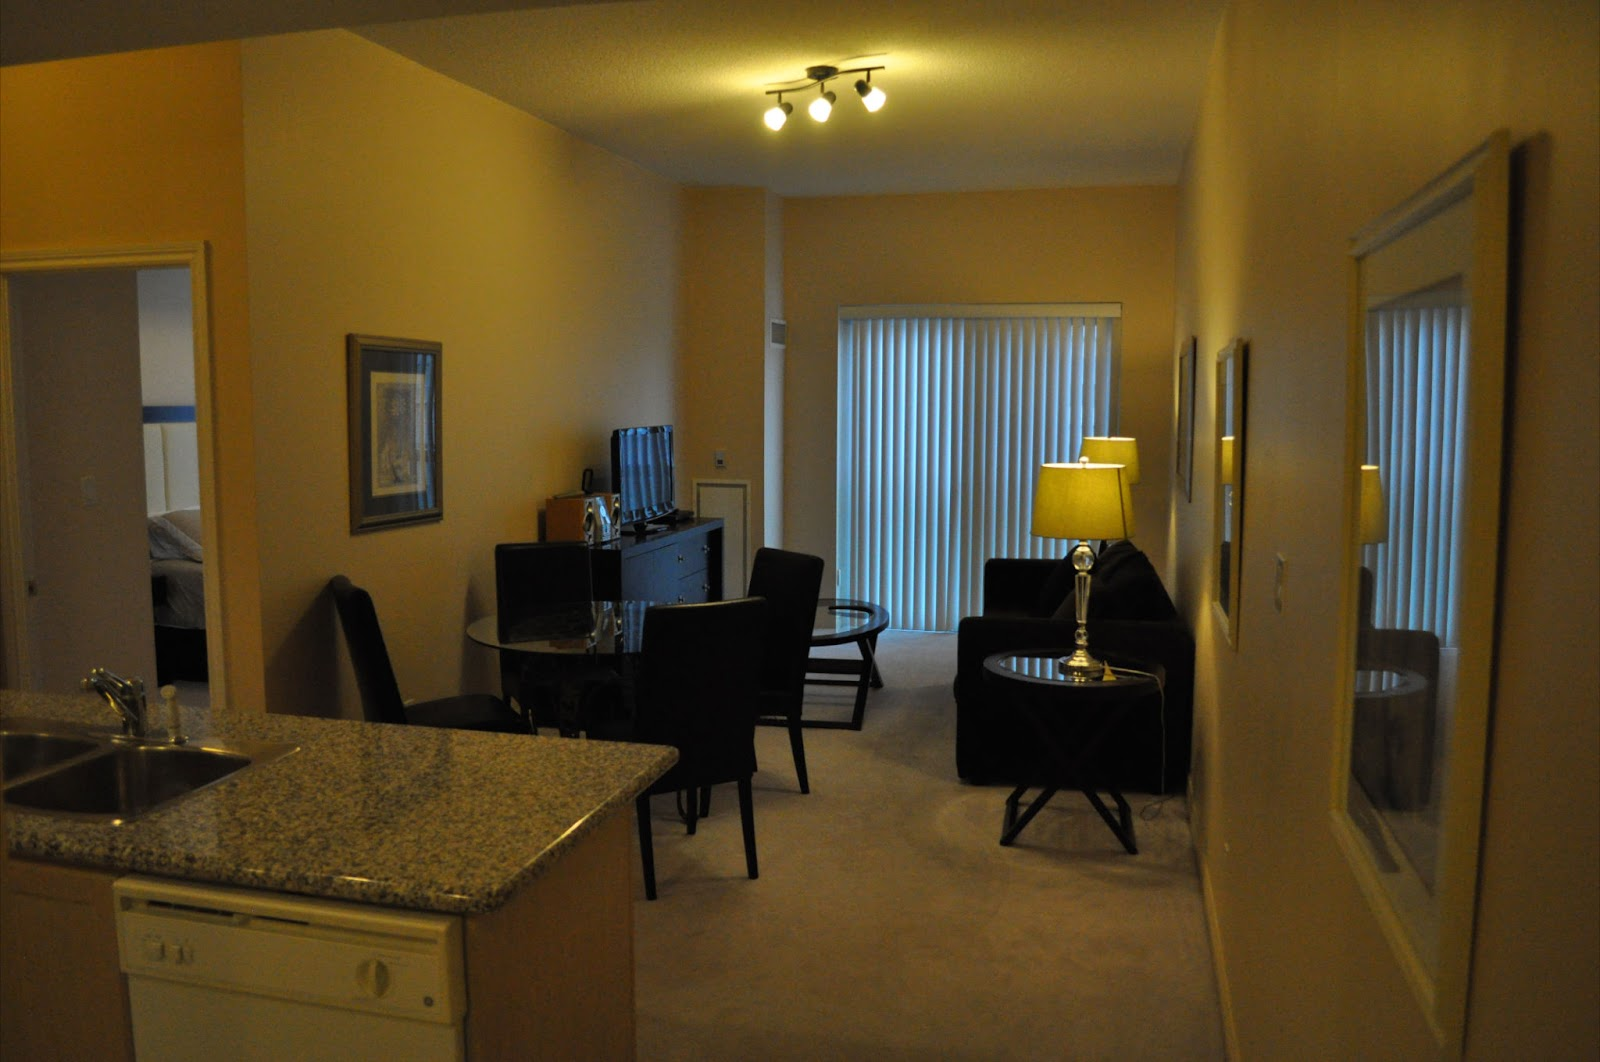 Furnished apartments toronto city stay toronto - 2 bedroom apartments in toronto canada ...